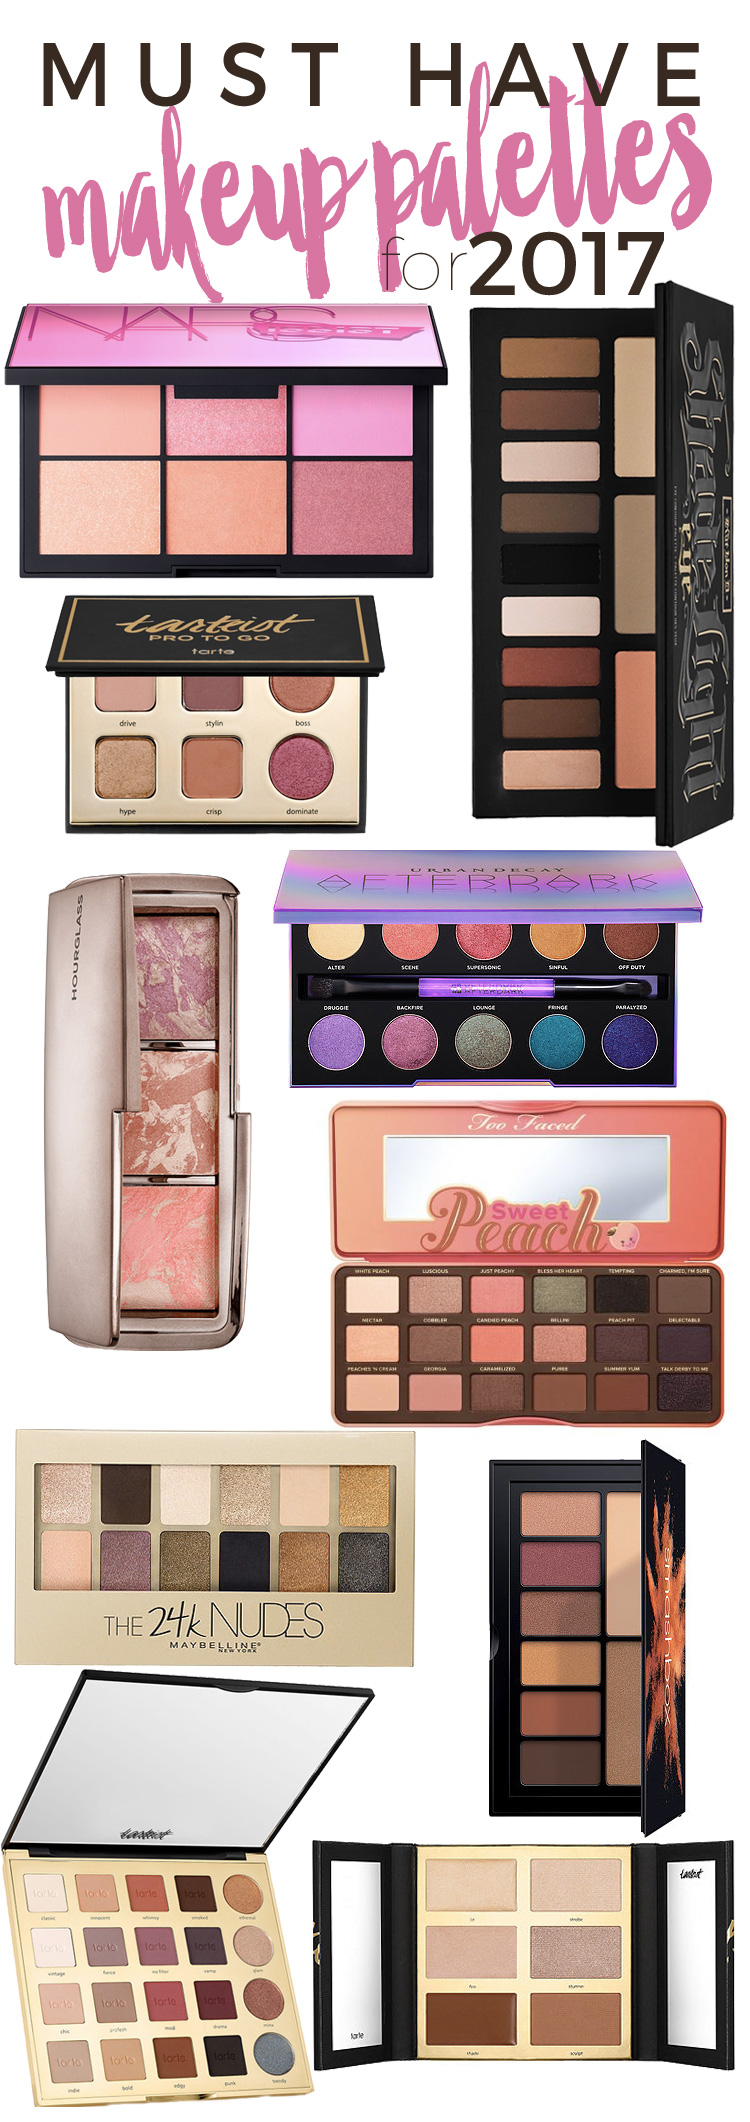 Eyeshadow Palette: 10 Must Have Makeup Palettes For 2017!